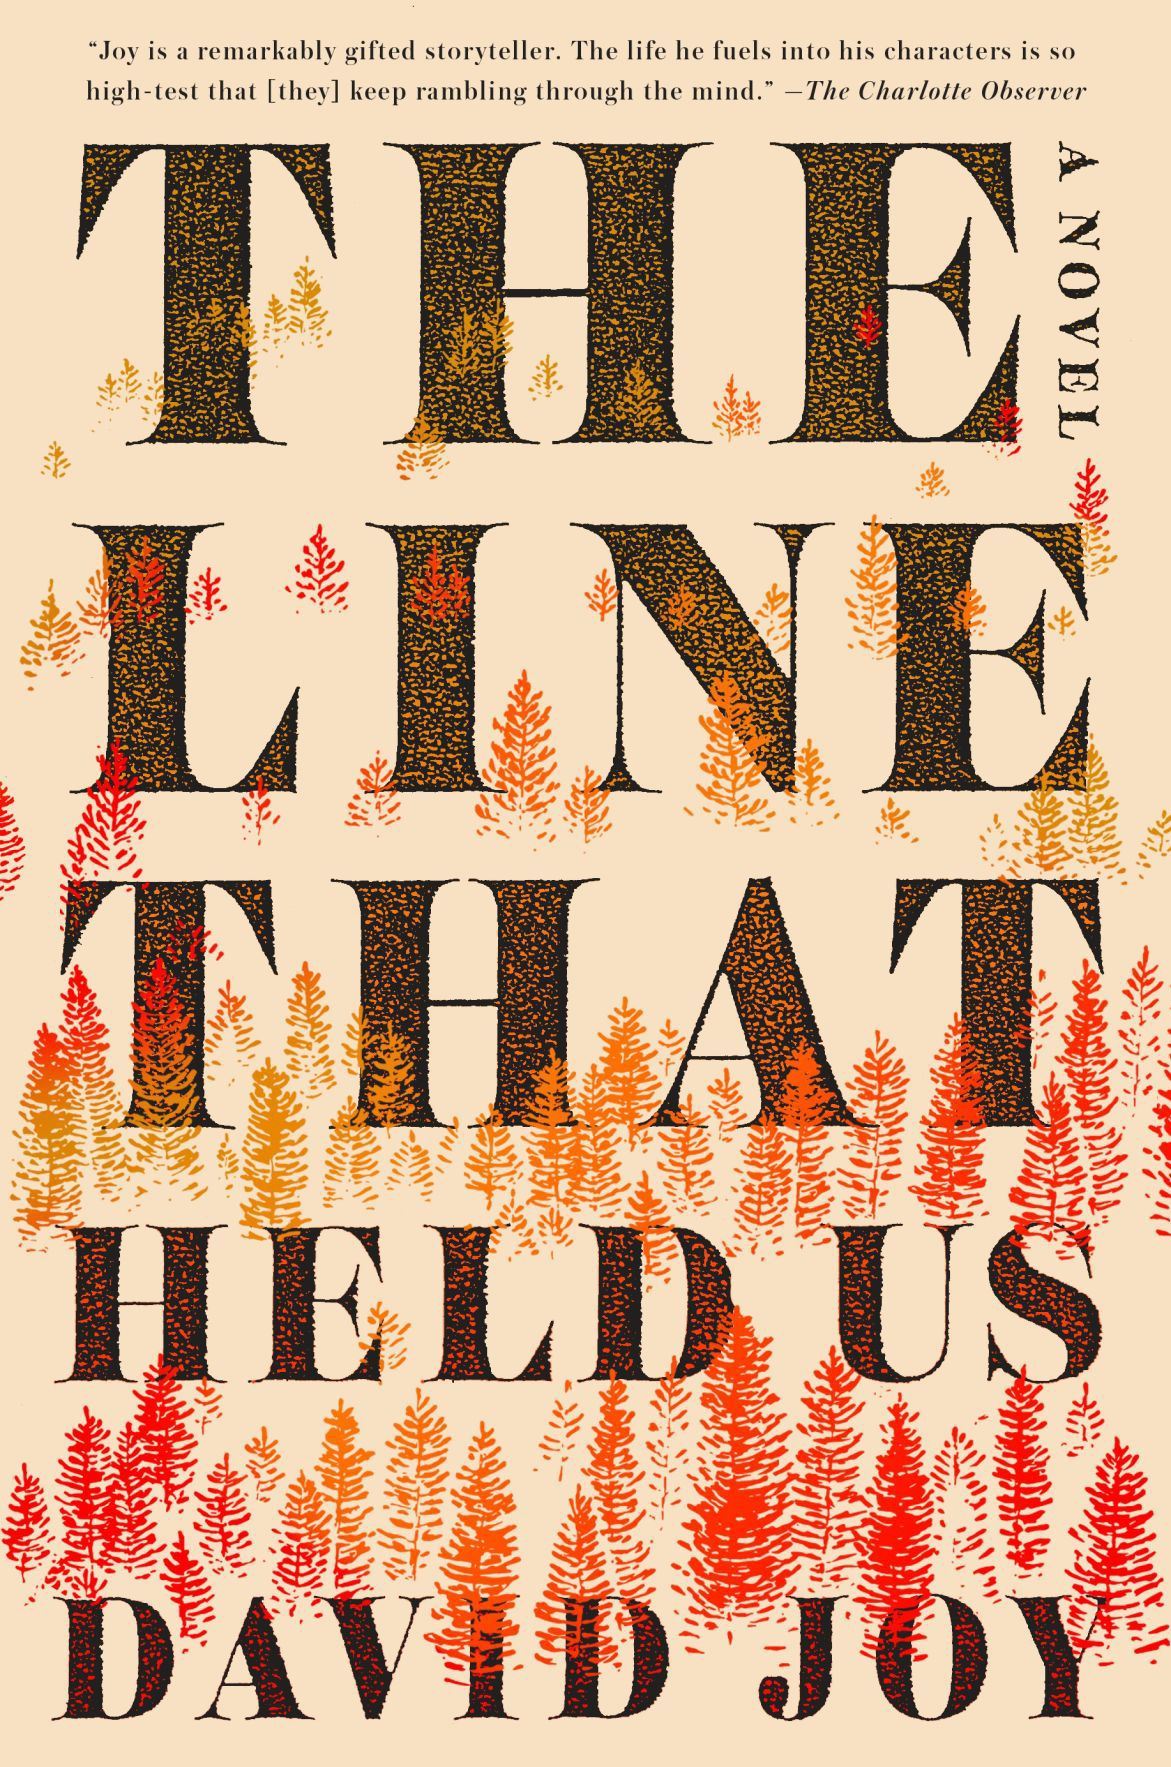 'The Line That Held Us'